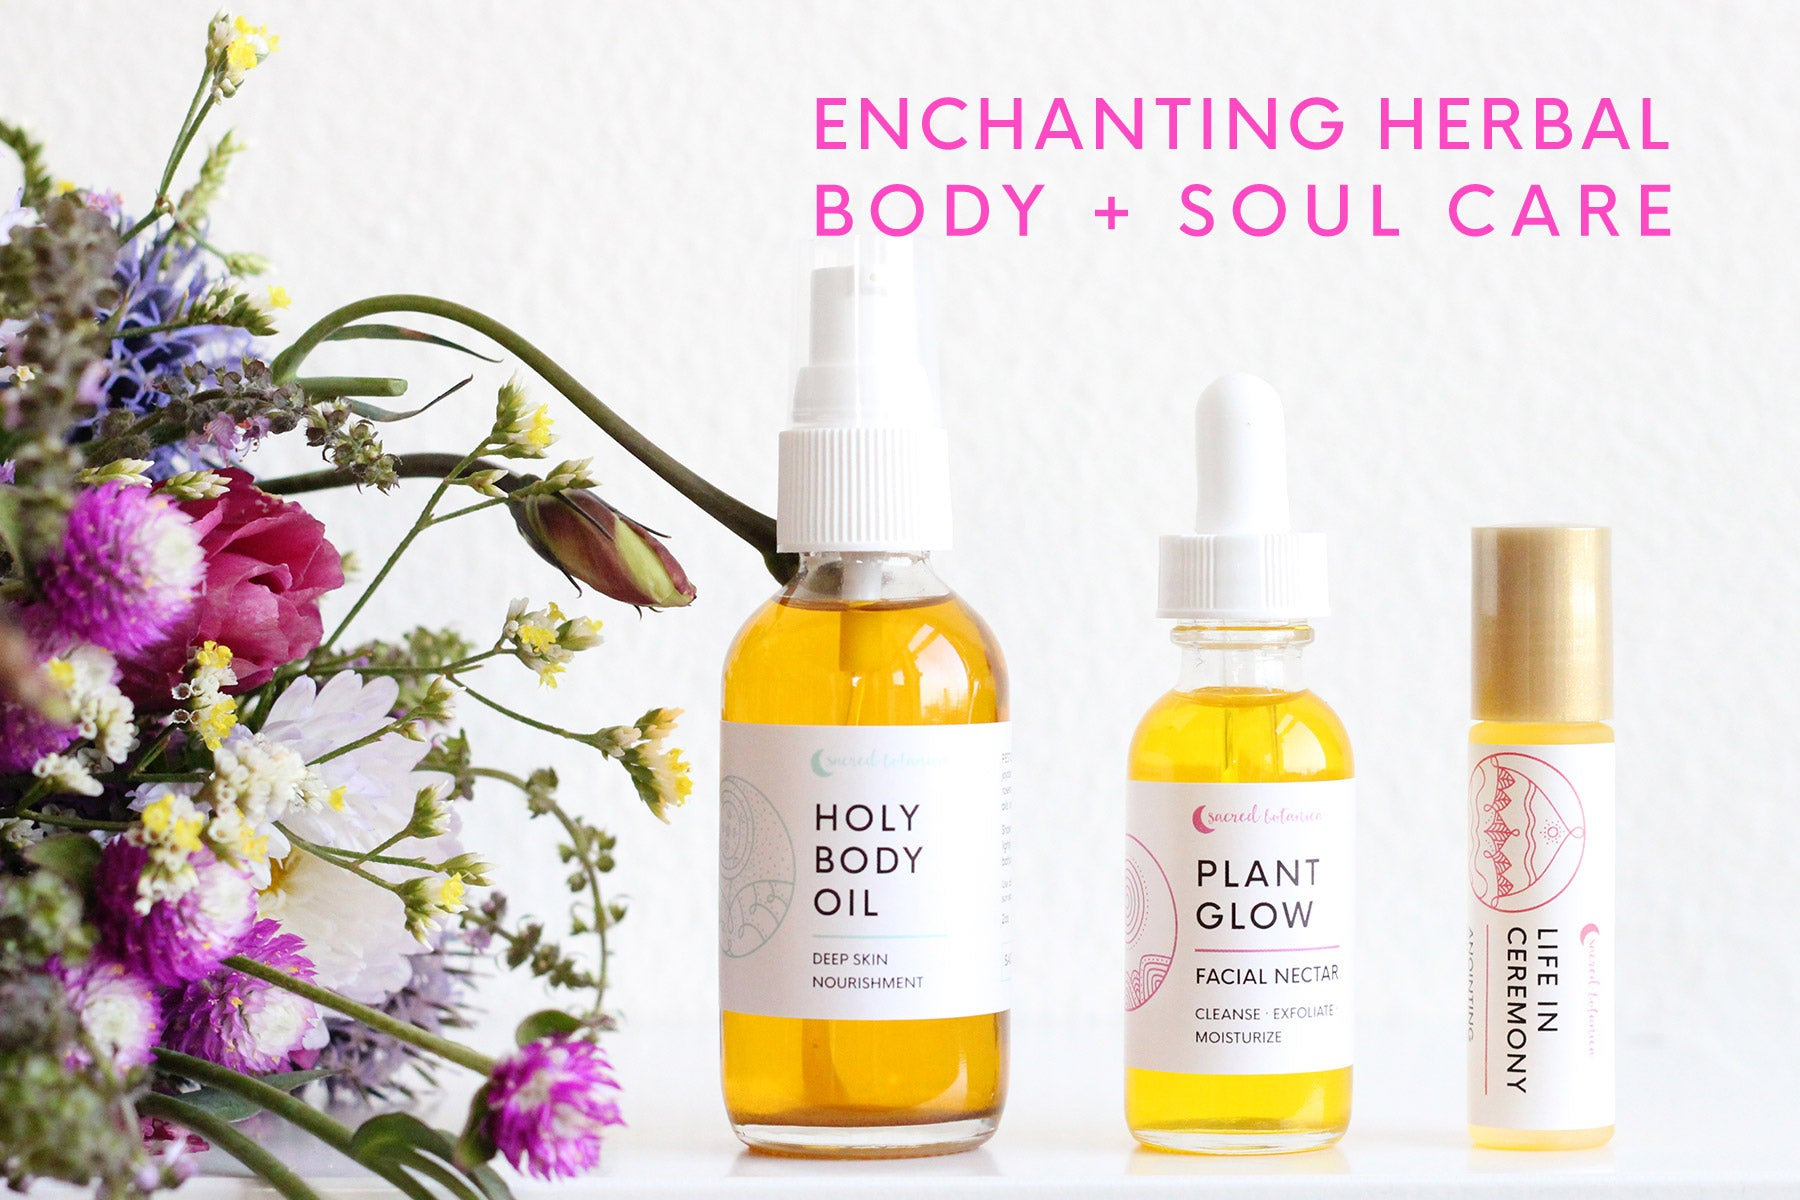 Enchanting Herbal Body + Soul Care